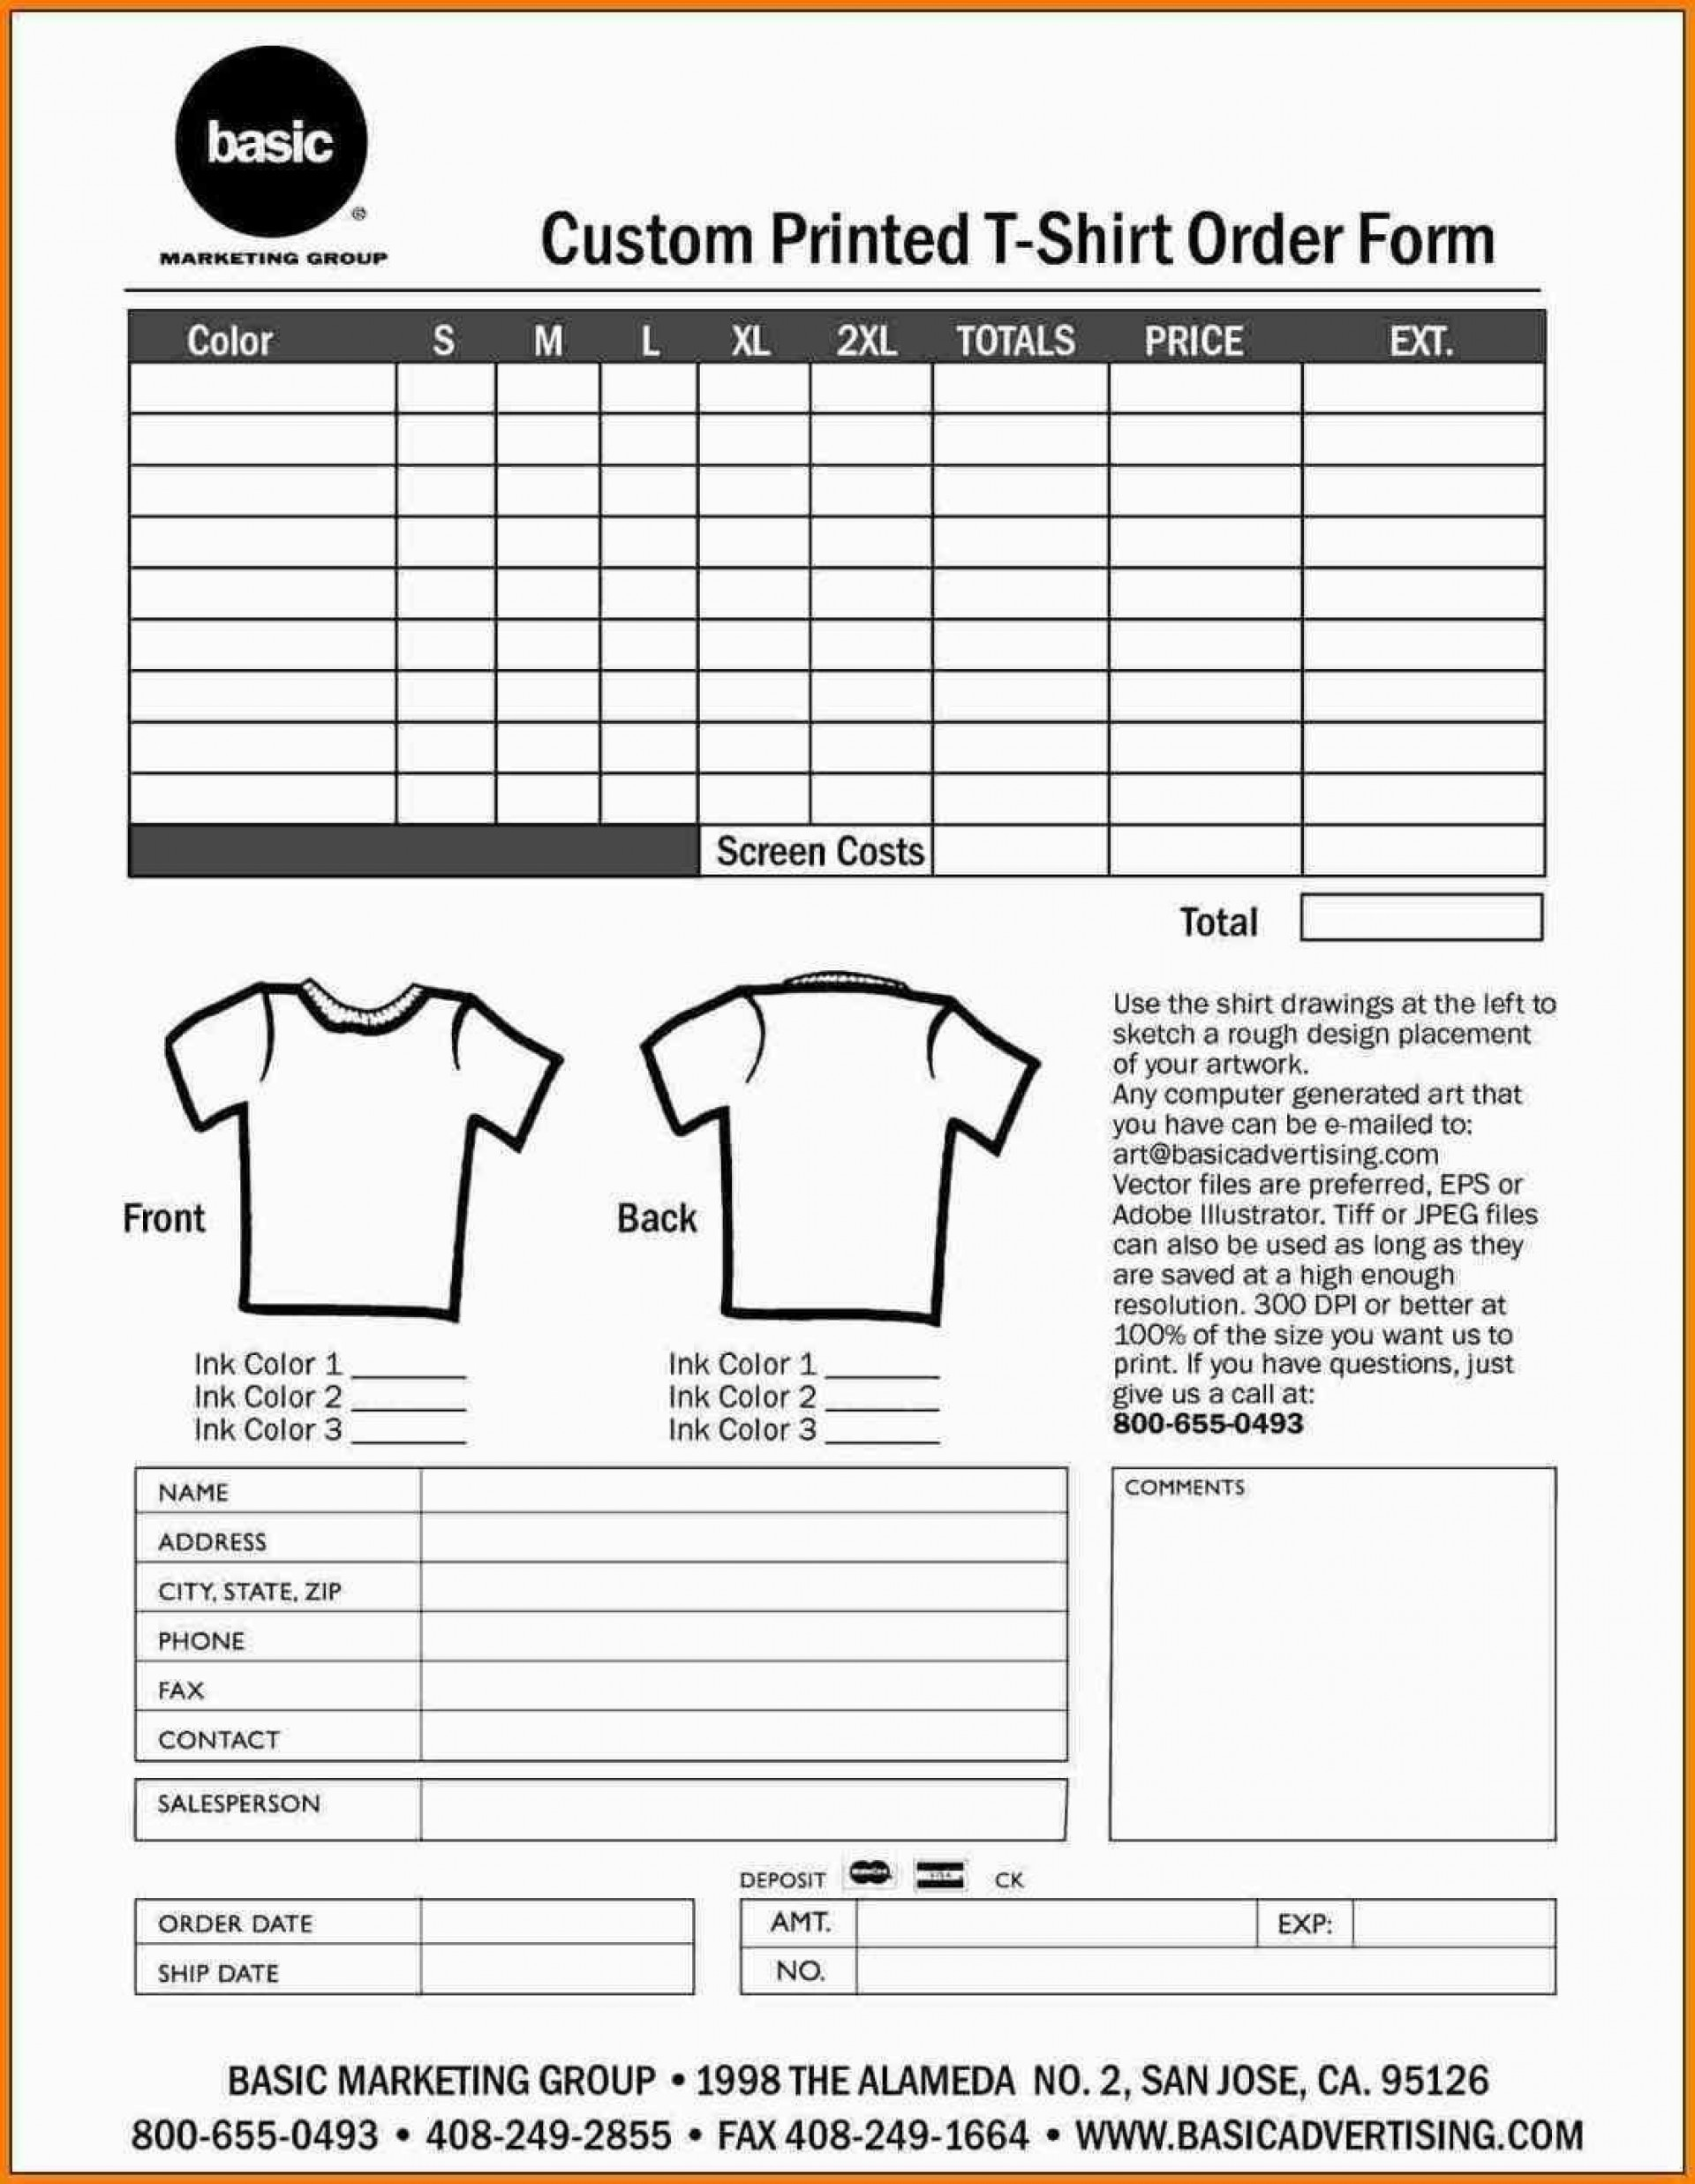 000 Shocking Shirt Order Form Template High Def  Templates T Microsoft Word Excel Download Tee1920